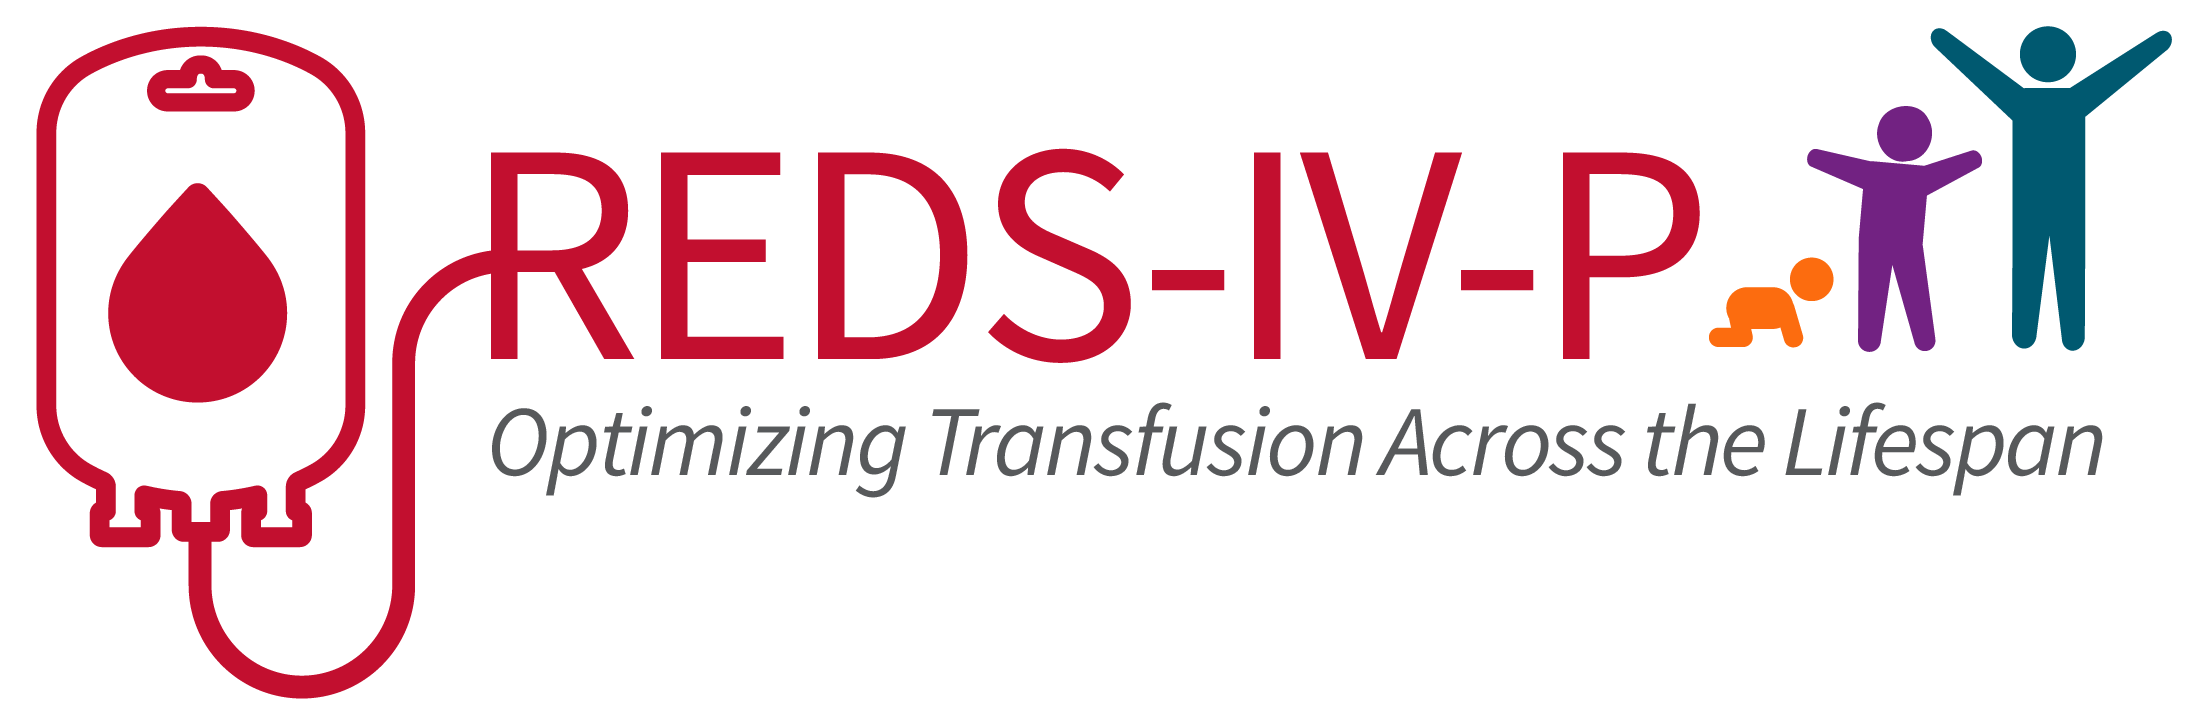 REDS-IV-P Optimizing Transfusion Across the Lifespan - Home Page